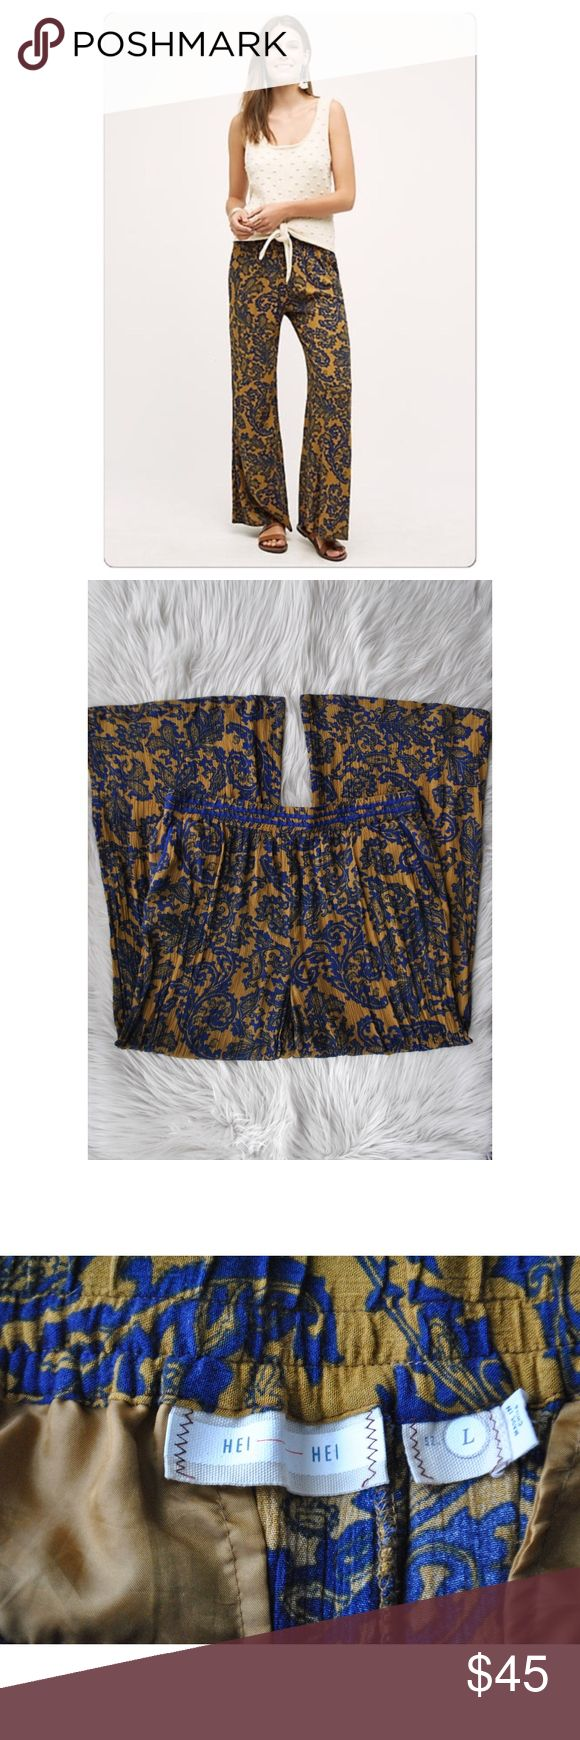 """Anthropologie   Hei Hei Tana Wide-Leg Pants Sz Lg Anthropologie   Hei Hei Tana Wide-Leg Pants Sz Lg. Beautiful vibrant colors of gold and blue. Elastic waist band for stretch. Wide leg makes for a breezy, lightweight feel.   Waist: 32"""" around, I stretched Hip: 46"""" around Inseam: 29""""  All measurements are approximate and should be measured against something you already own to determine how they will fit you. Anthropologie Pants Wide Leg"""